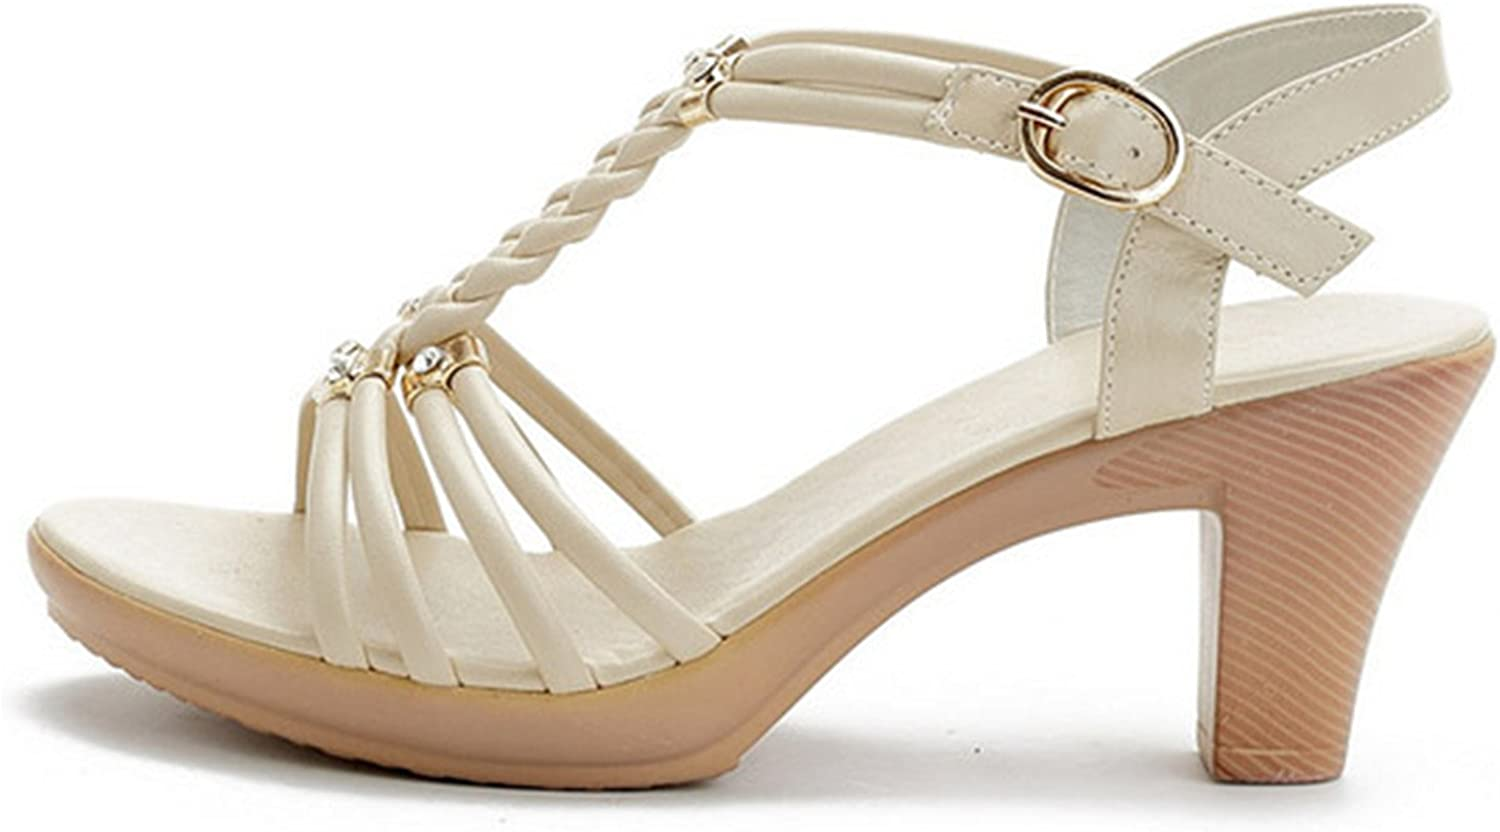 Karl Conner Genuine Leather High Heels Sandals for Women Fashion Summer shoes